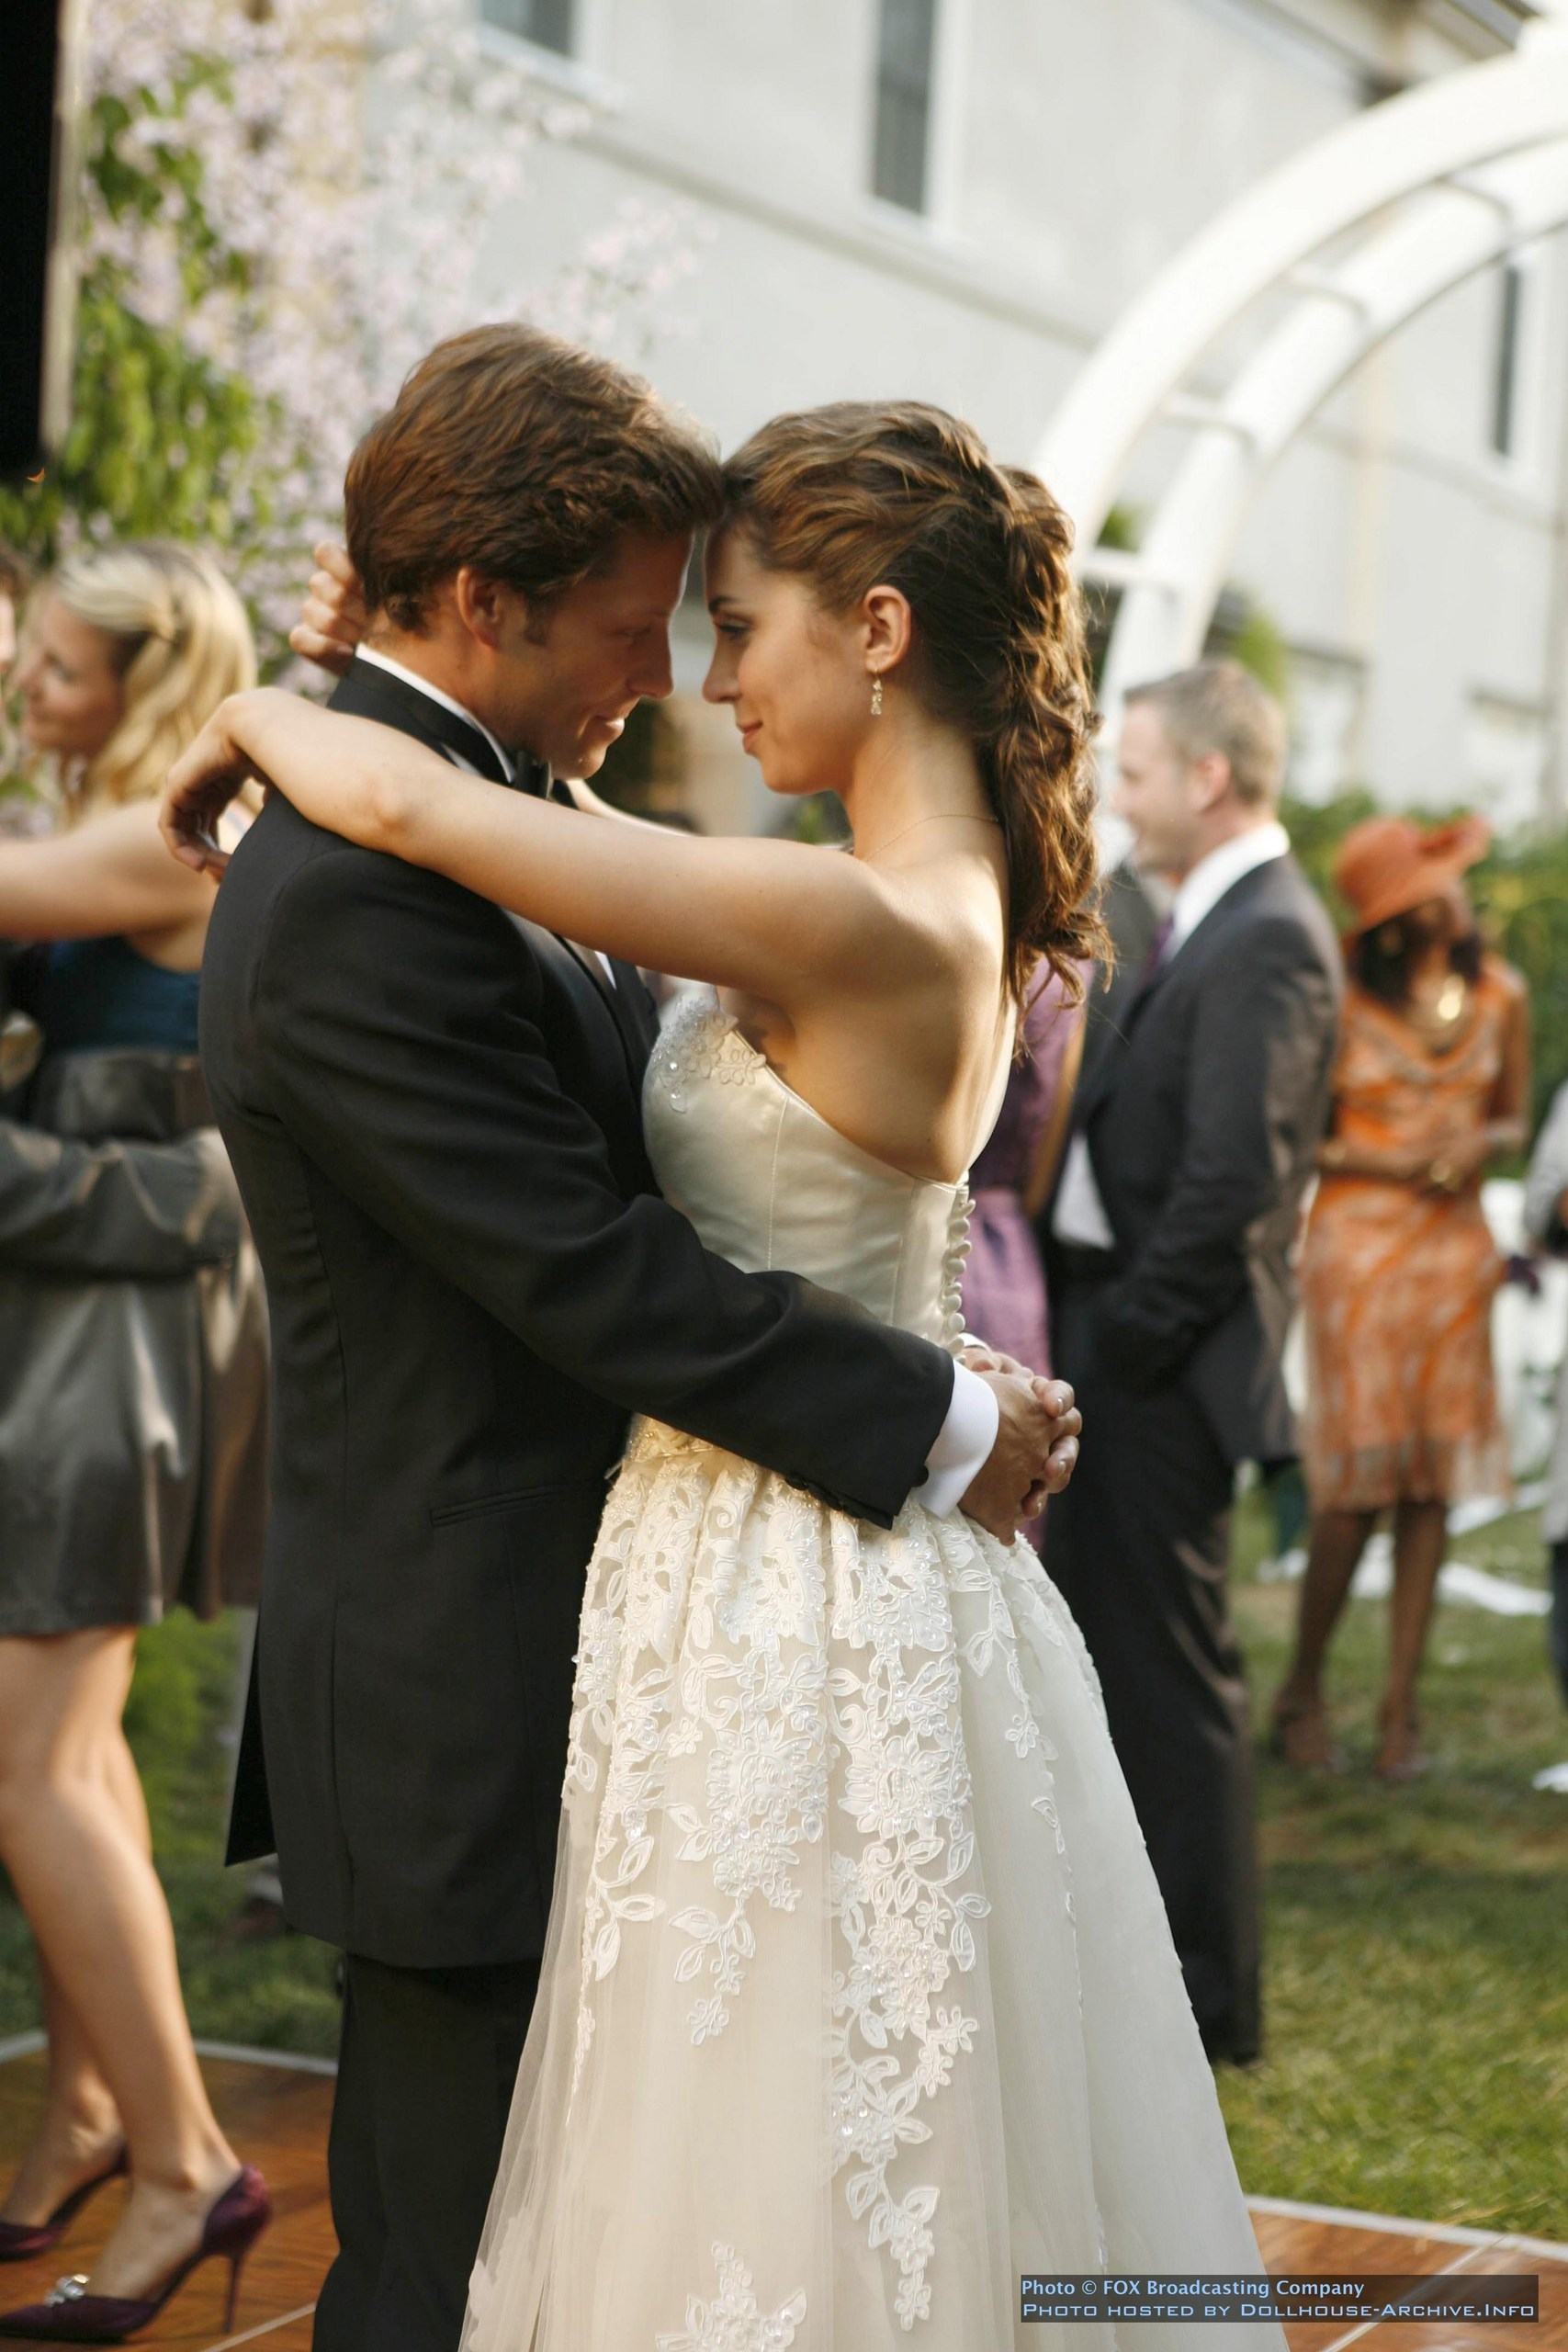 Bridal Wallpaper Hd Jamie Bamber Images Jamie Bamber Hd Wallpaper And